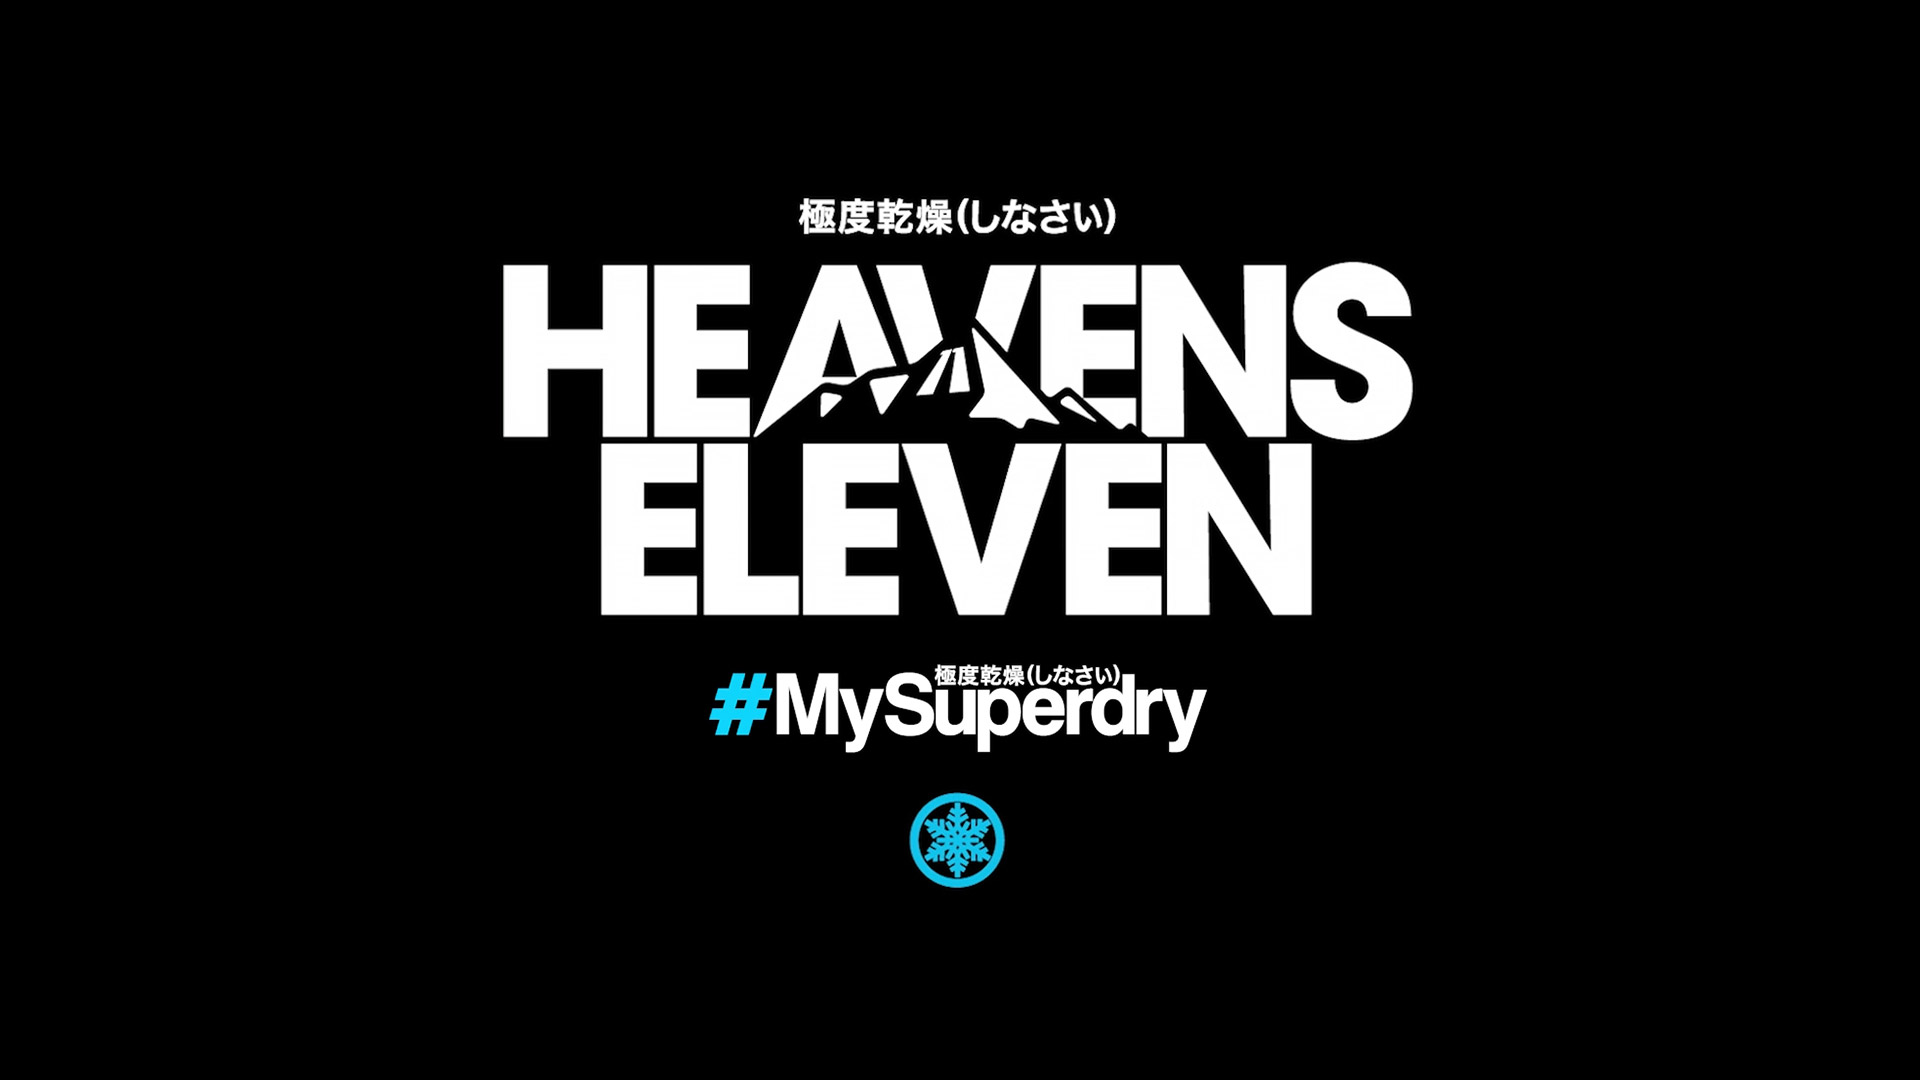 Superdry Snow presents Heaven's Eleven – the ultimate adrenaline rush